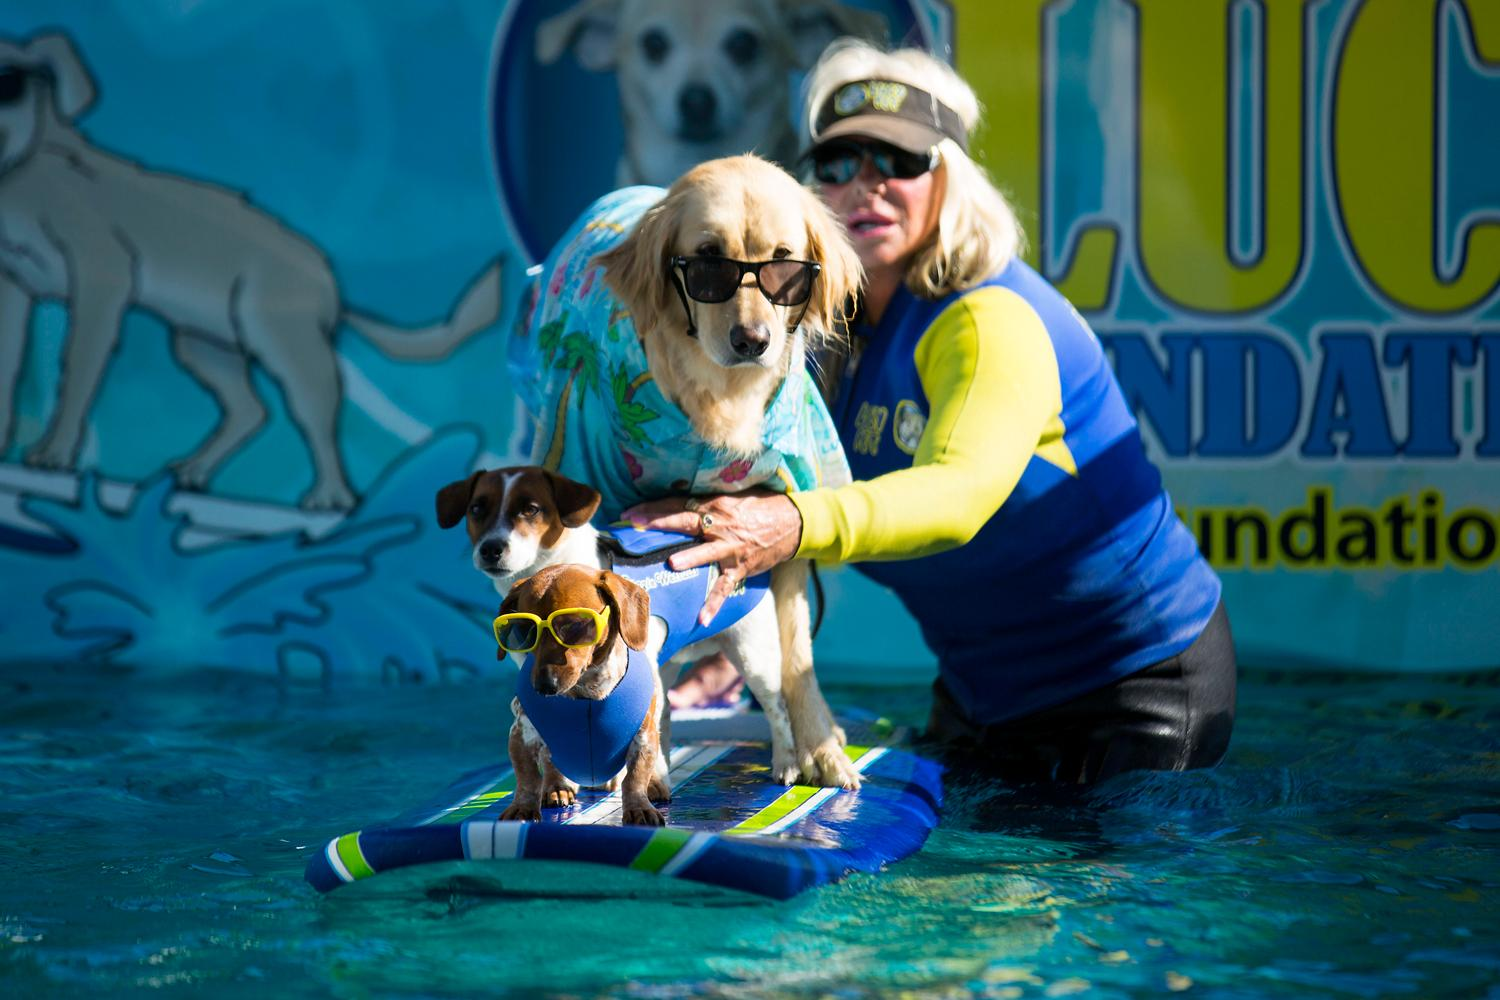 Lucy Pet Products and the Lucy Pet Foundation brought out a wave pool for dogs during Bark in the Park! Mariners fans were allowed to bring their dogs to the game to enjoy the sun, some Mariners baseball, and man's best friend. The next Bark in the Park game will be September 5, against the Houston Astros. (Sy Bean / Seattle Refined)